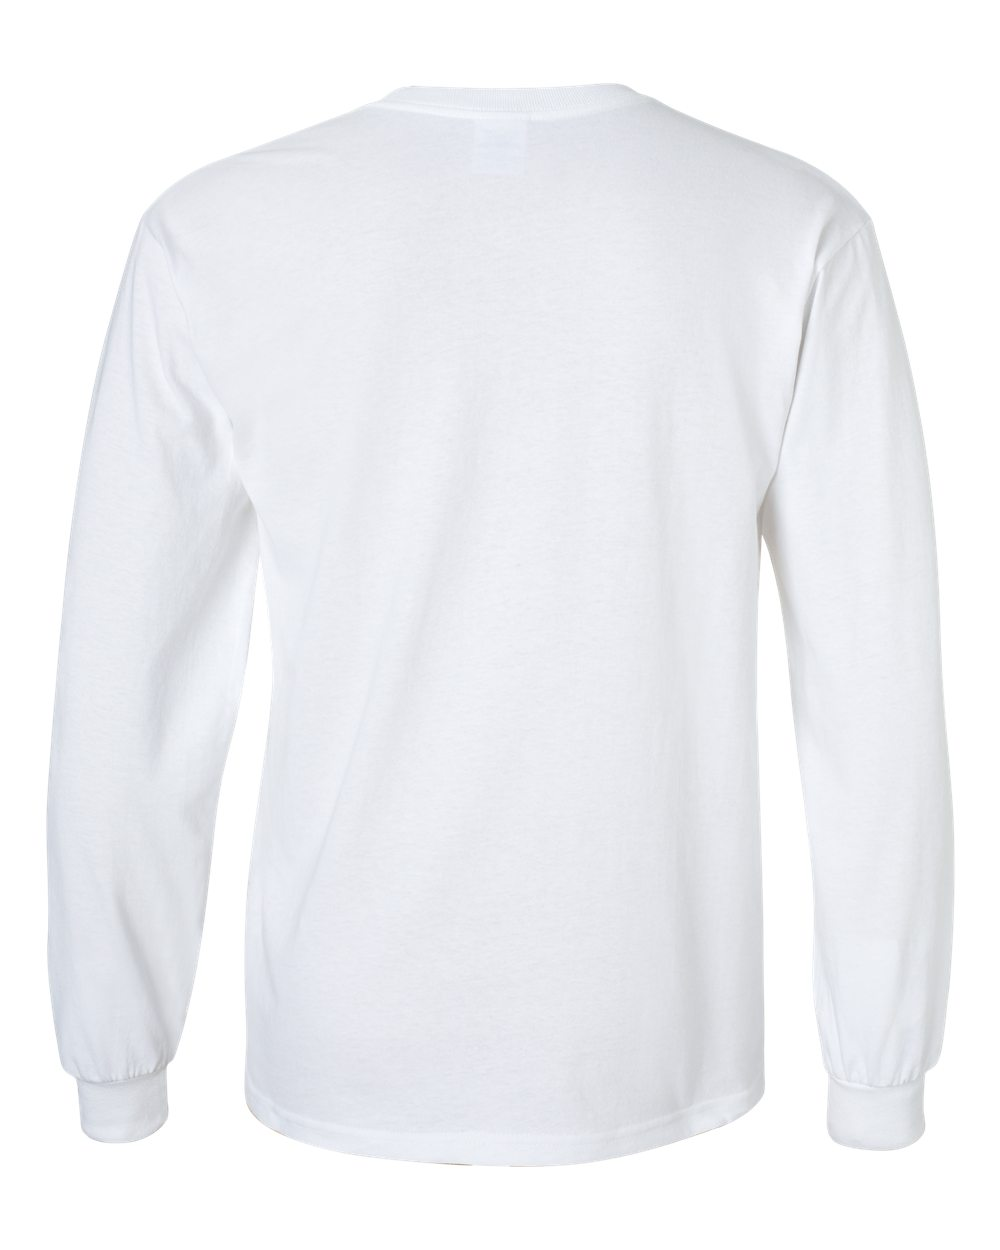 Gildan-Men-039-s-Ultra-Cotton-6-oz-Long-Sleeve-T-Shirt-G240-S-5XL thumbnail 112